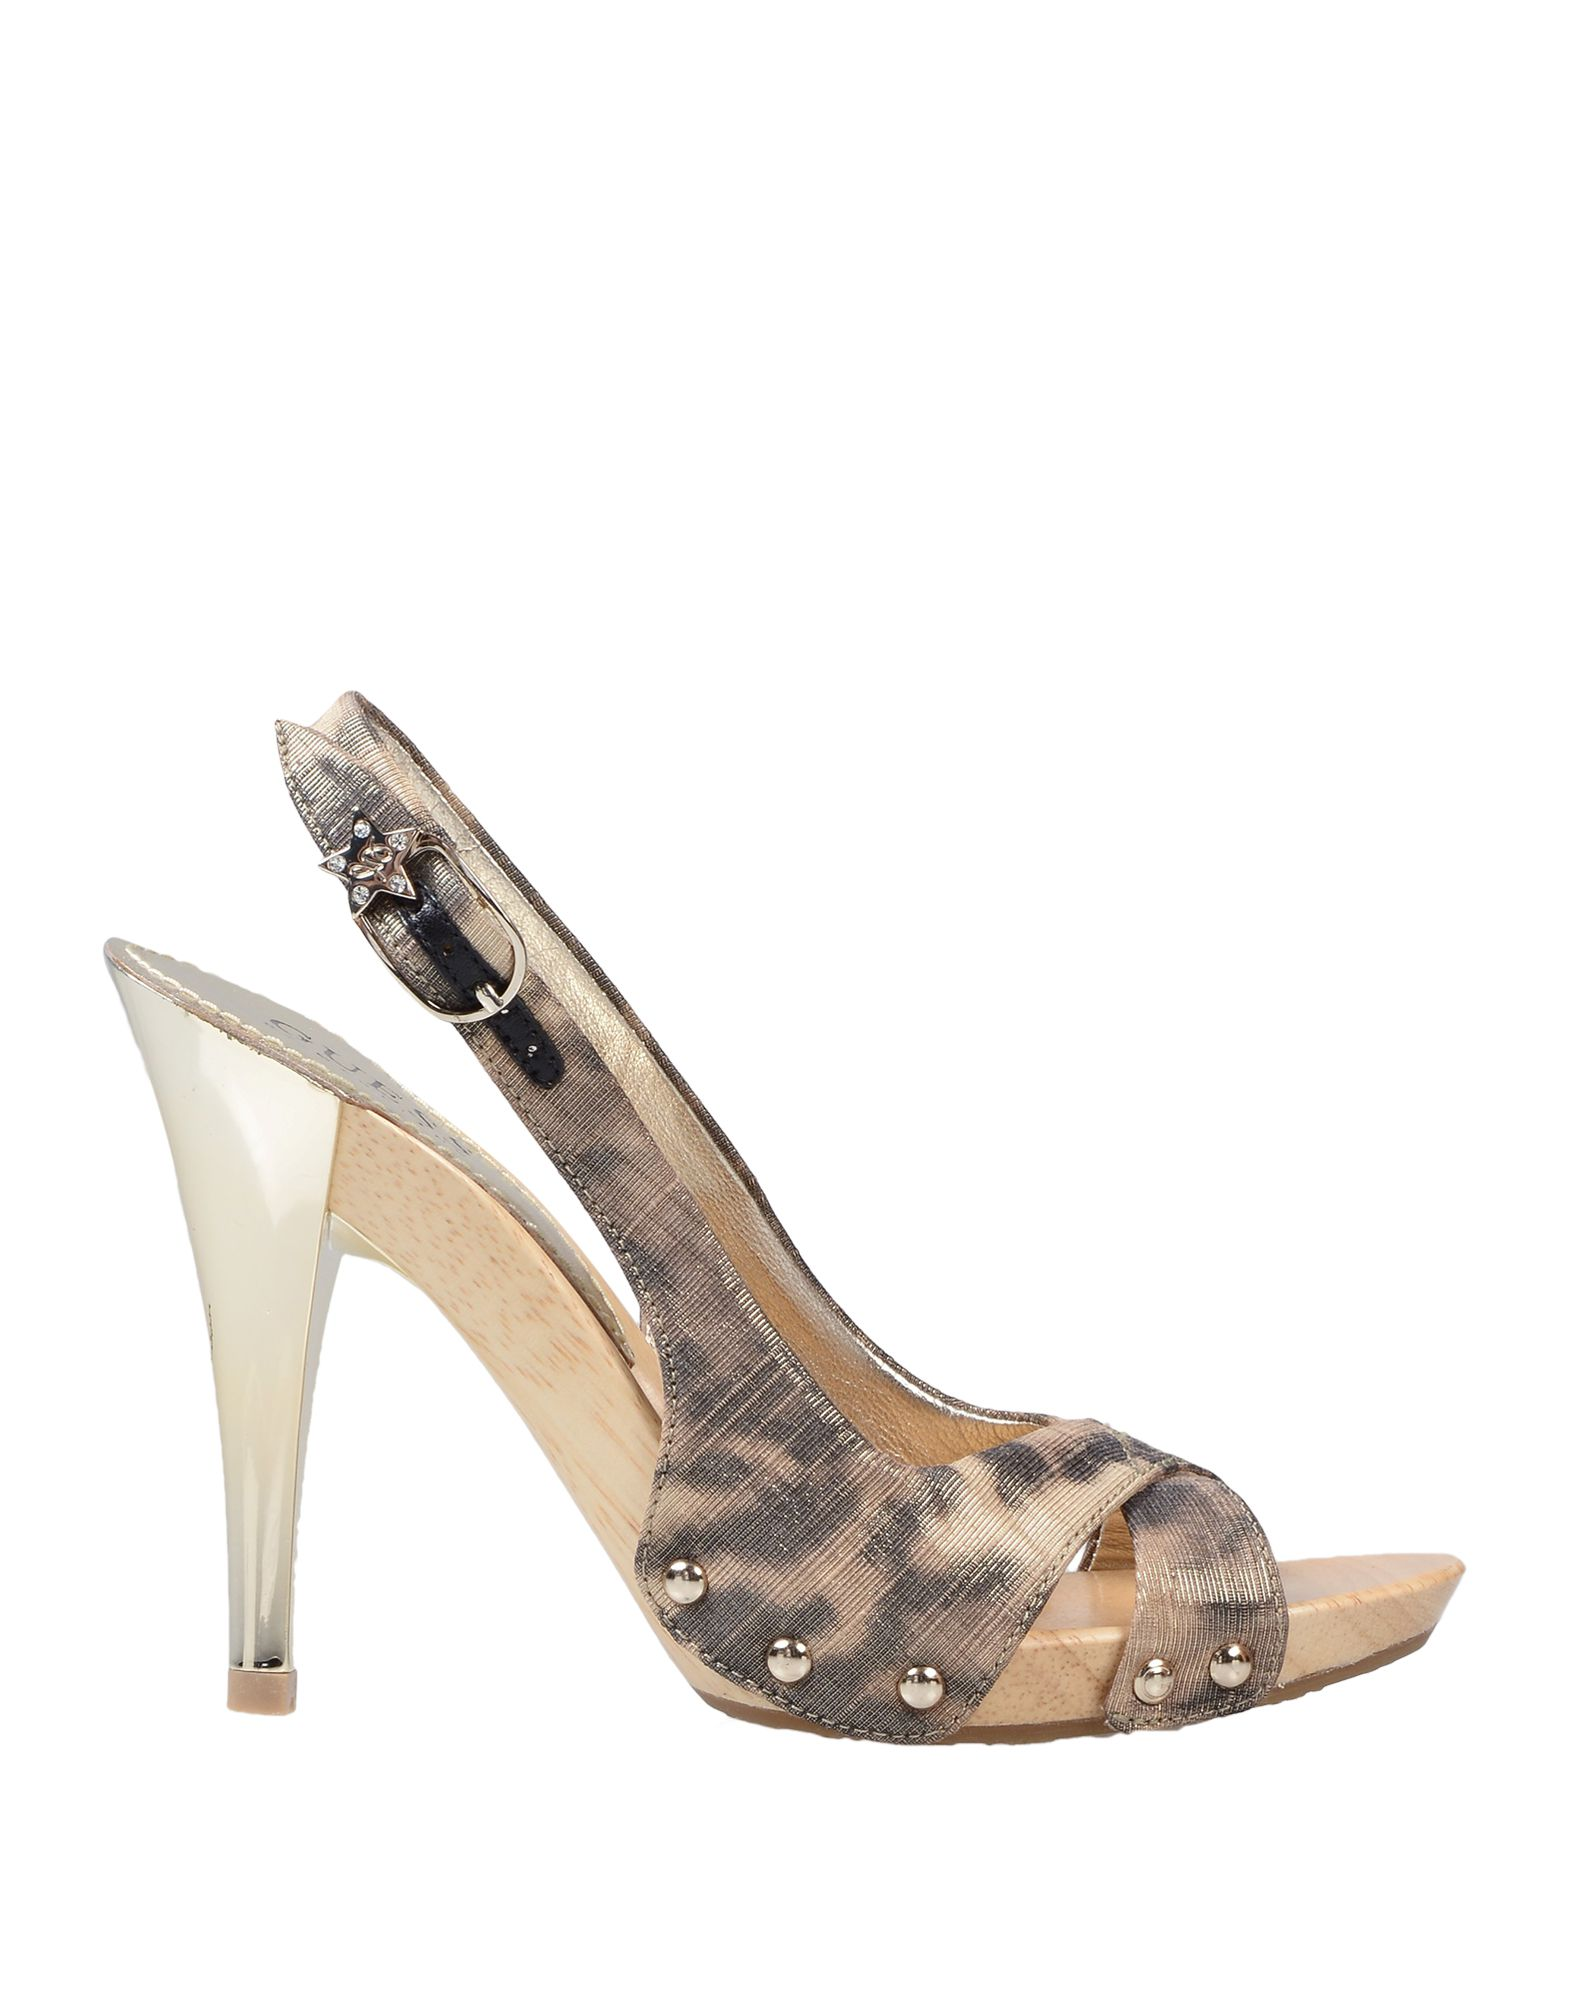 Guess By Marciano Sandals - Women Guess By Marciano Sandals Kingdom online on  United Kingdom Sandals - 11522807DJ e76f84